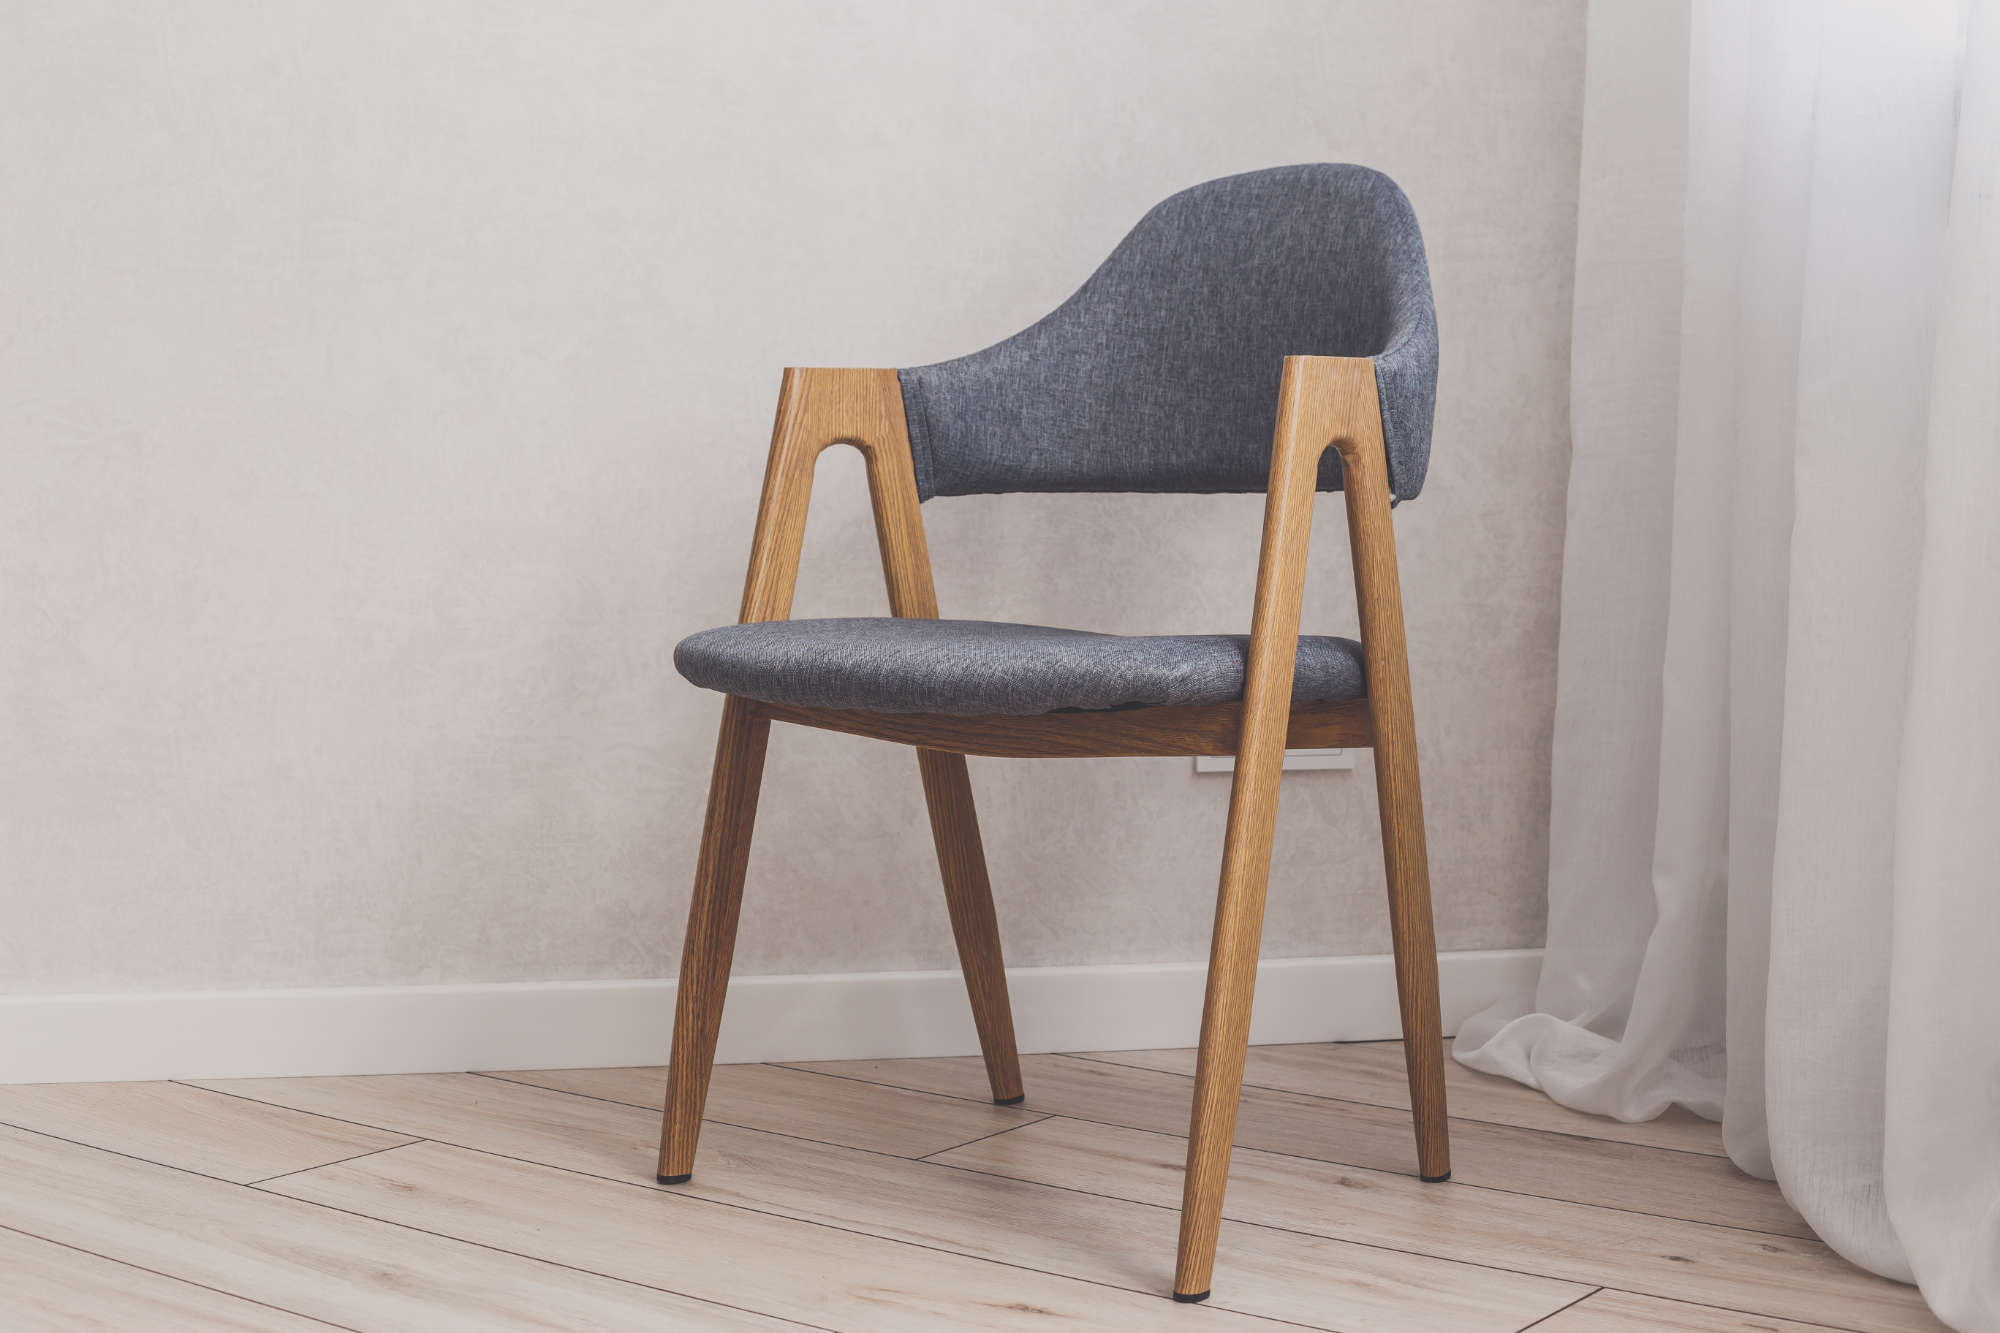 Modern grey chair with white brick walls on background and wood floor.